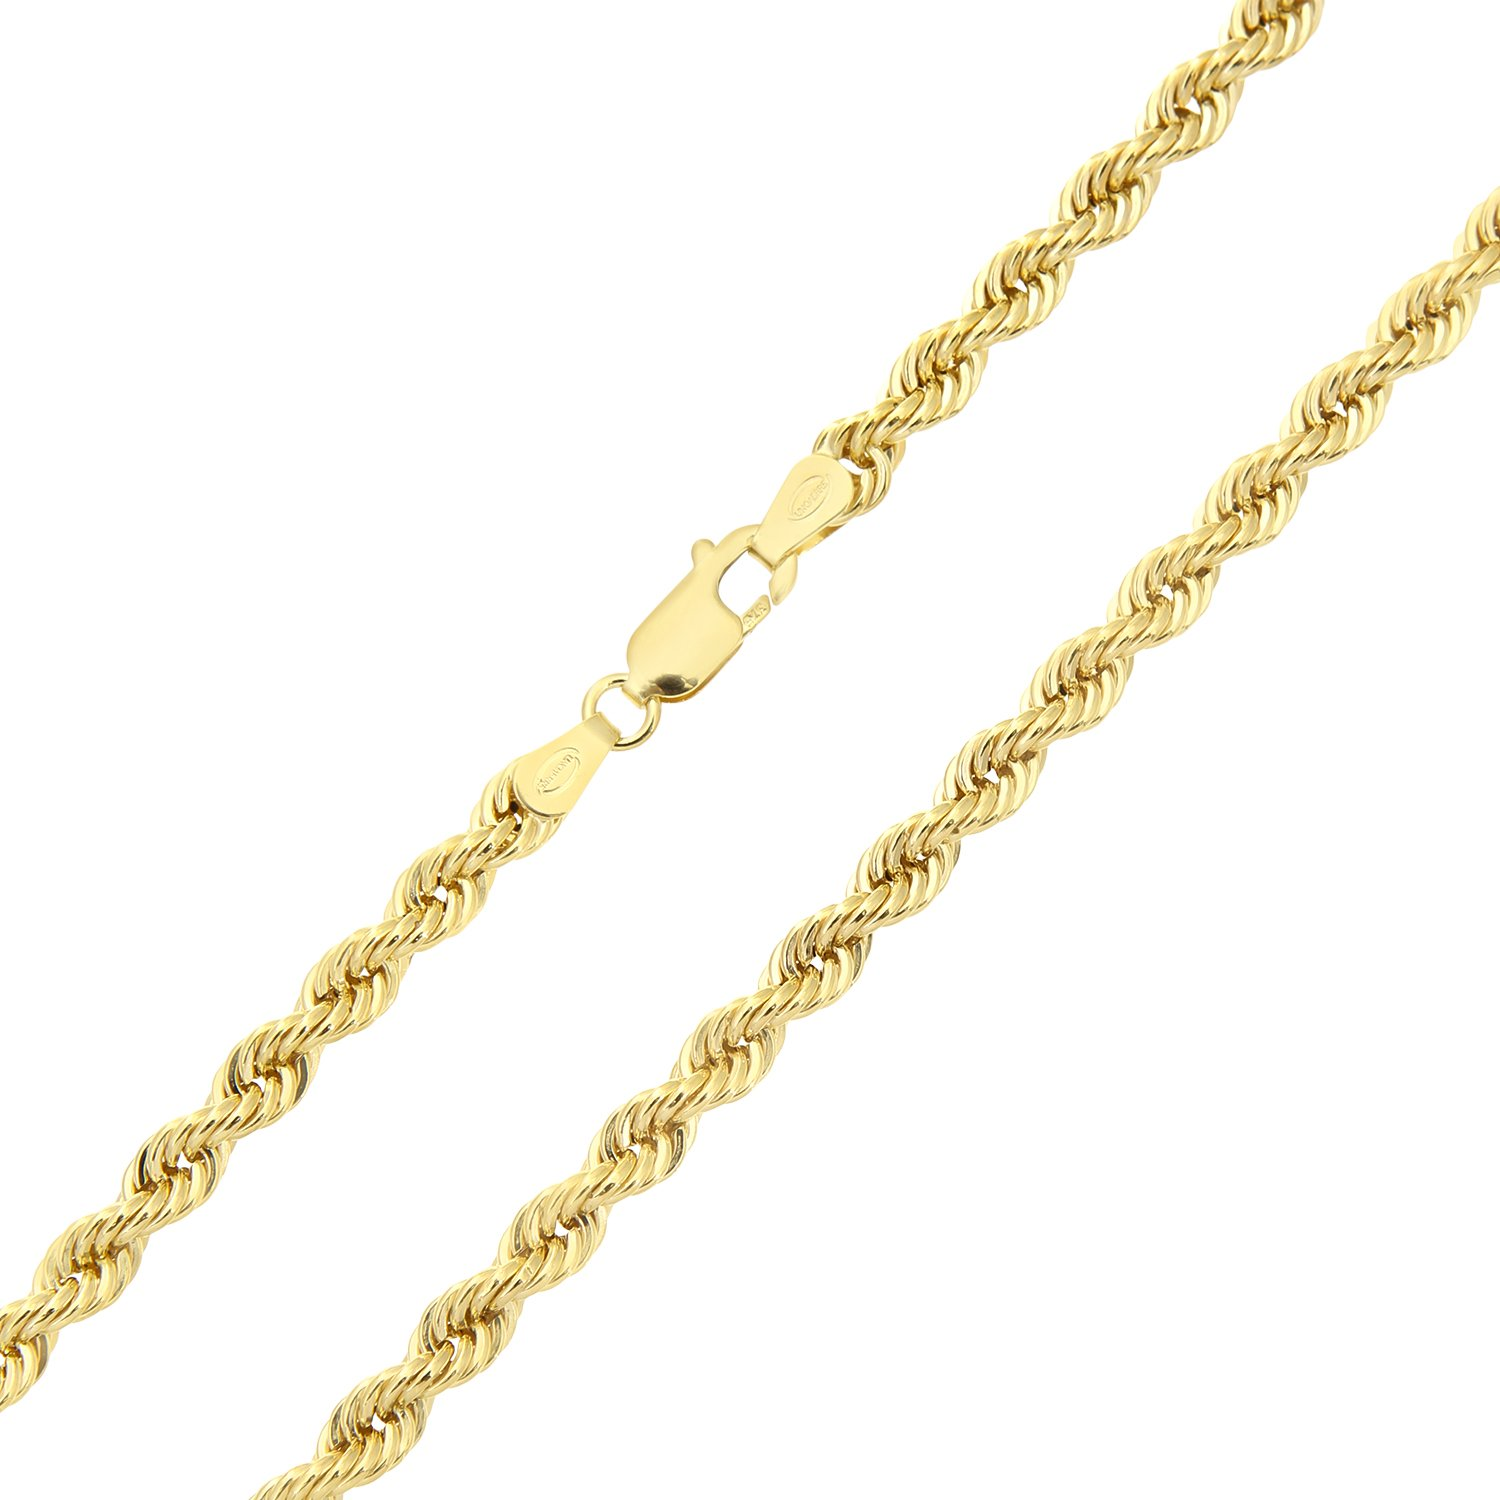 Citerna 9 ct Yellow Gold Rope Chain Necklace of 18 inch/46 cm Length M5frV